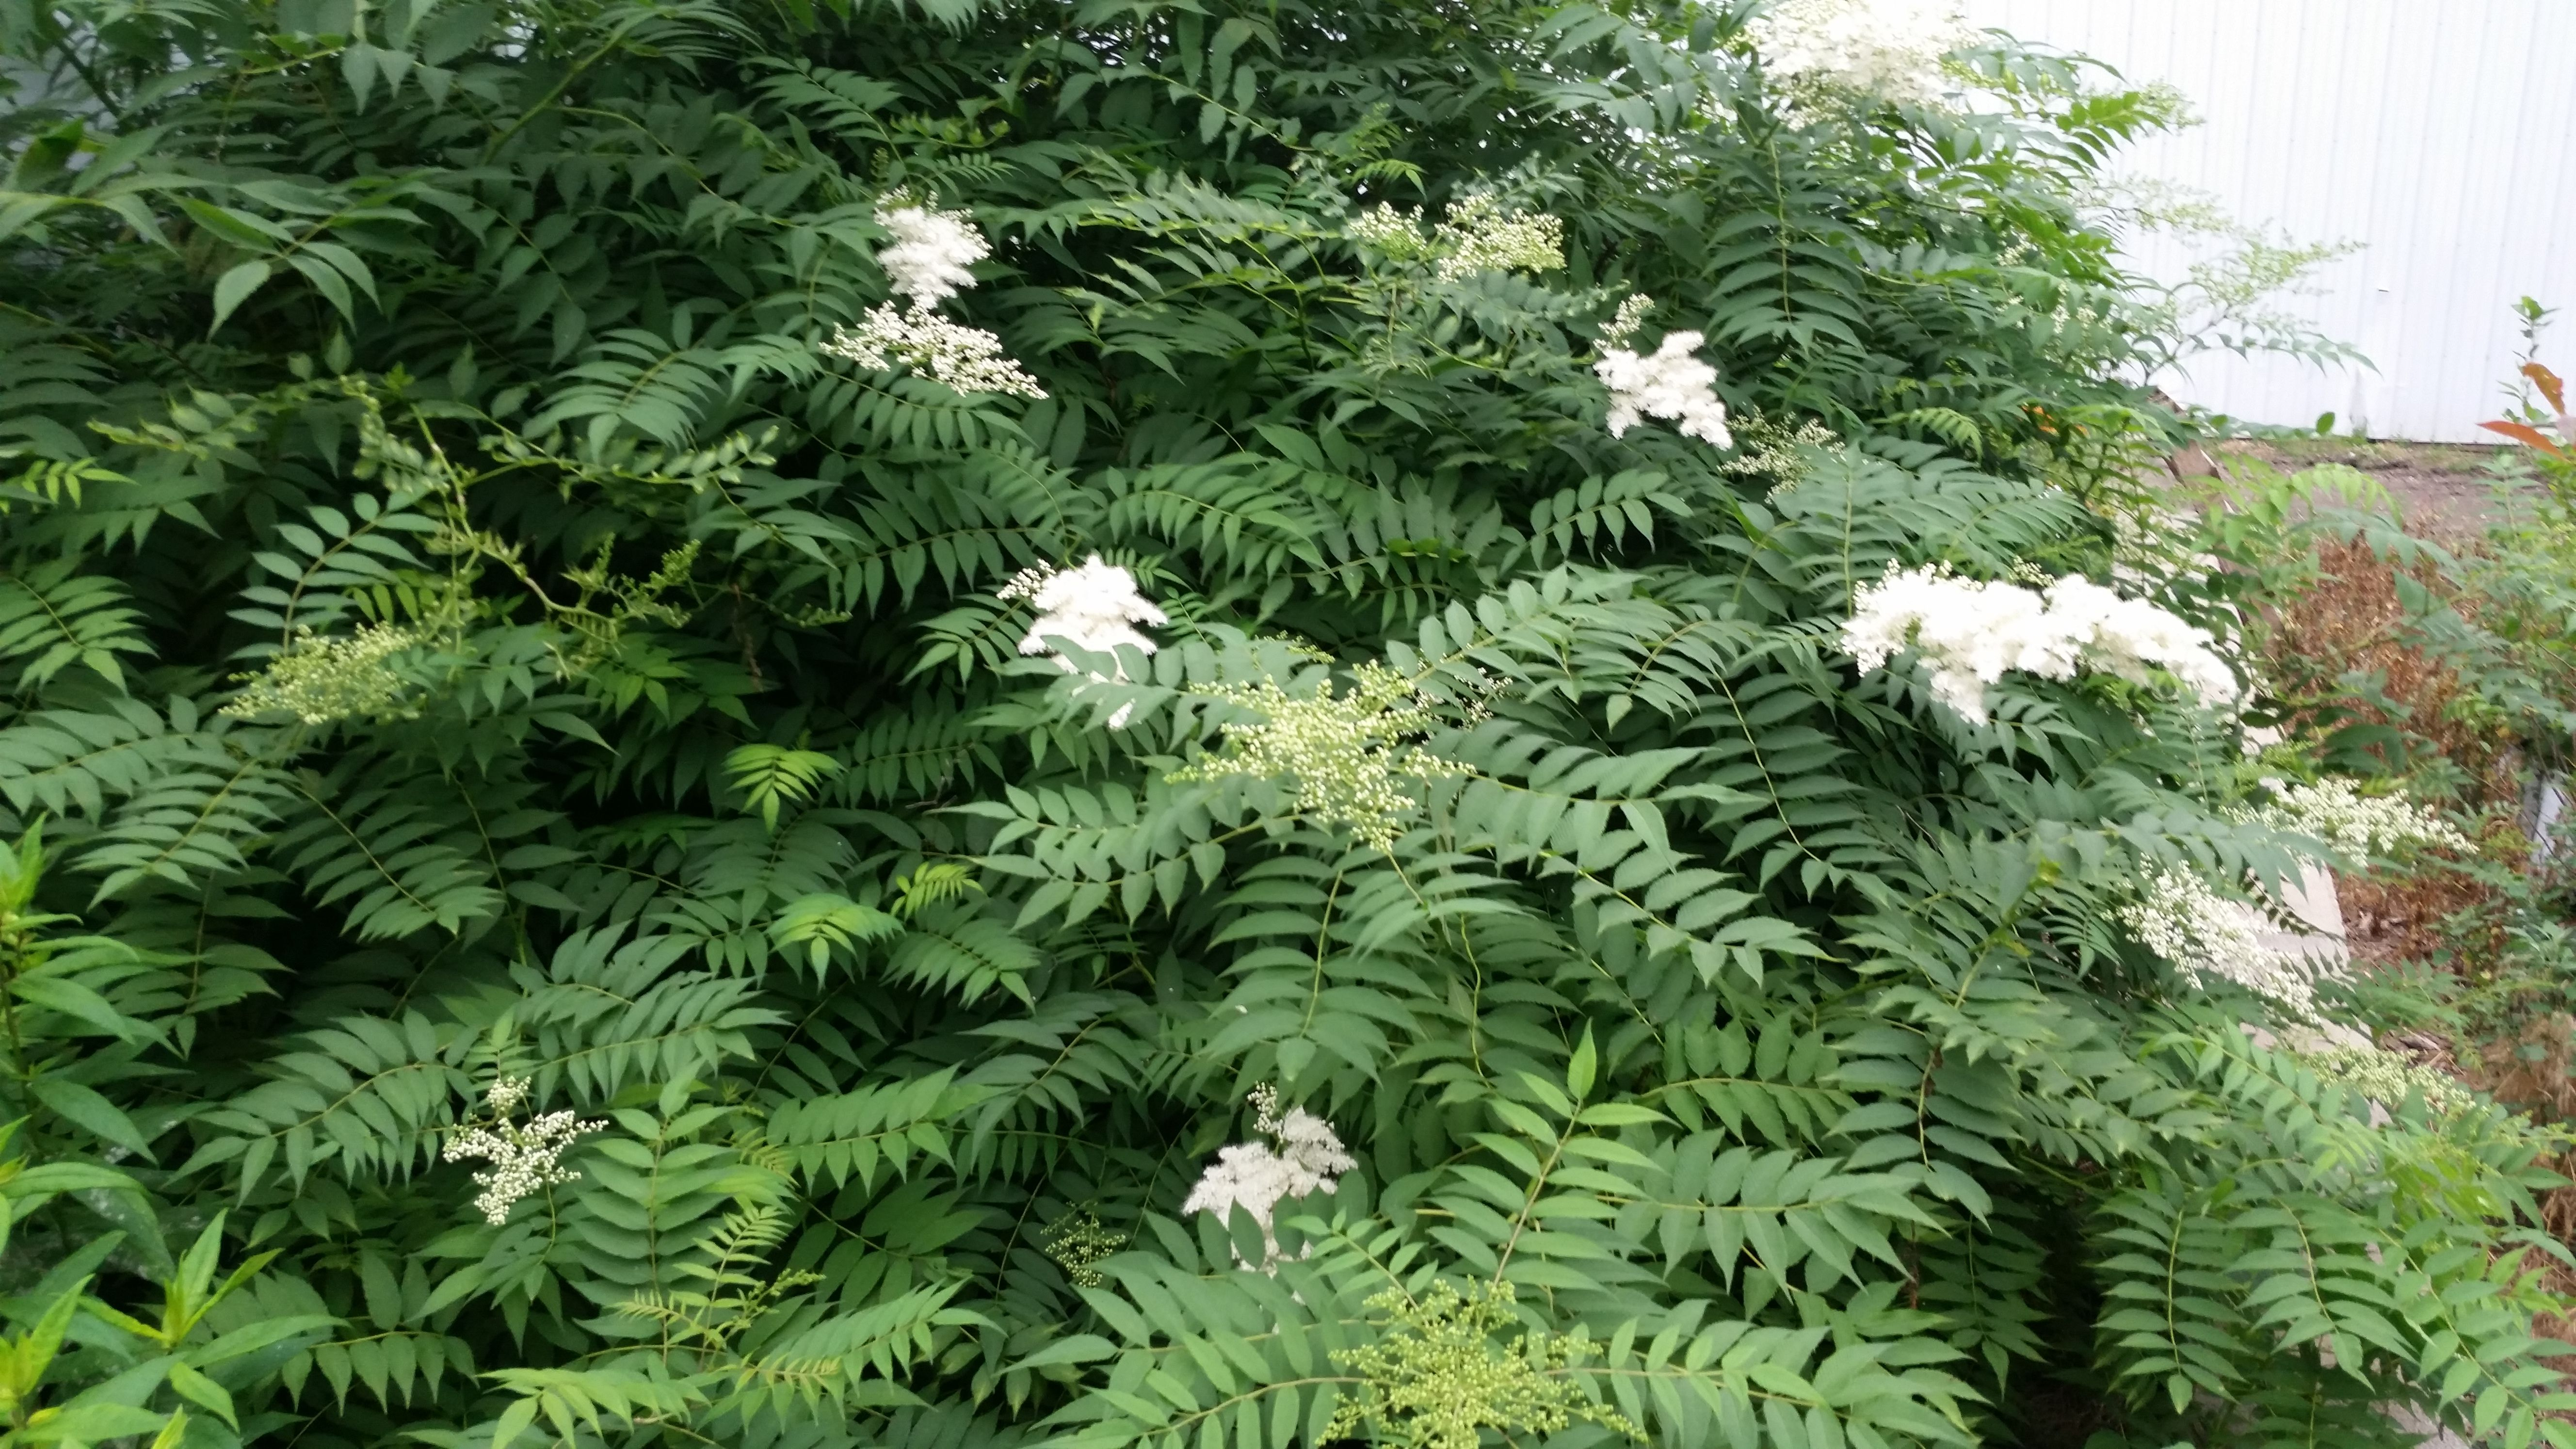 Ash Leaf Or False Spirea Is A Large Spreading Shade Loving Shrub It Grows In Part Shade And Produces Loads Of Crea Shade Loving Shrubs Trees To Plant Plants